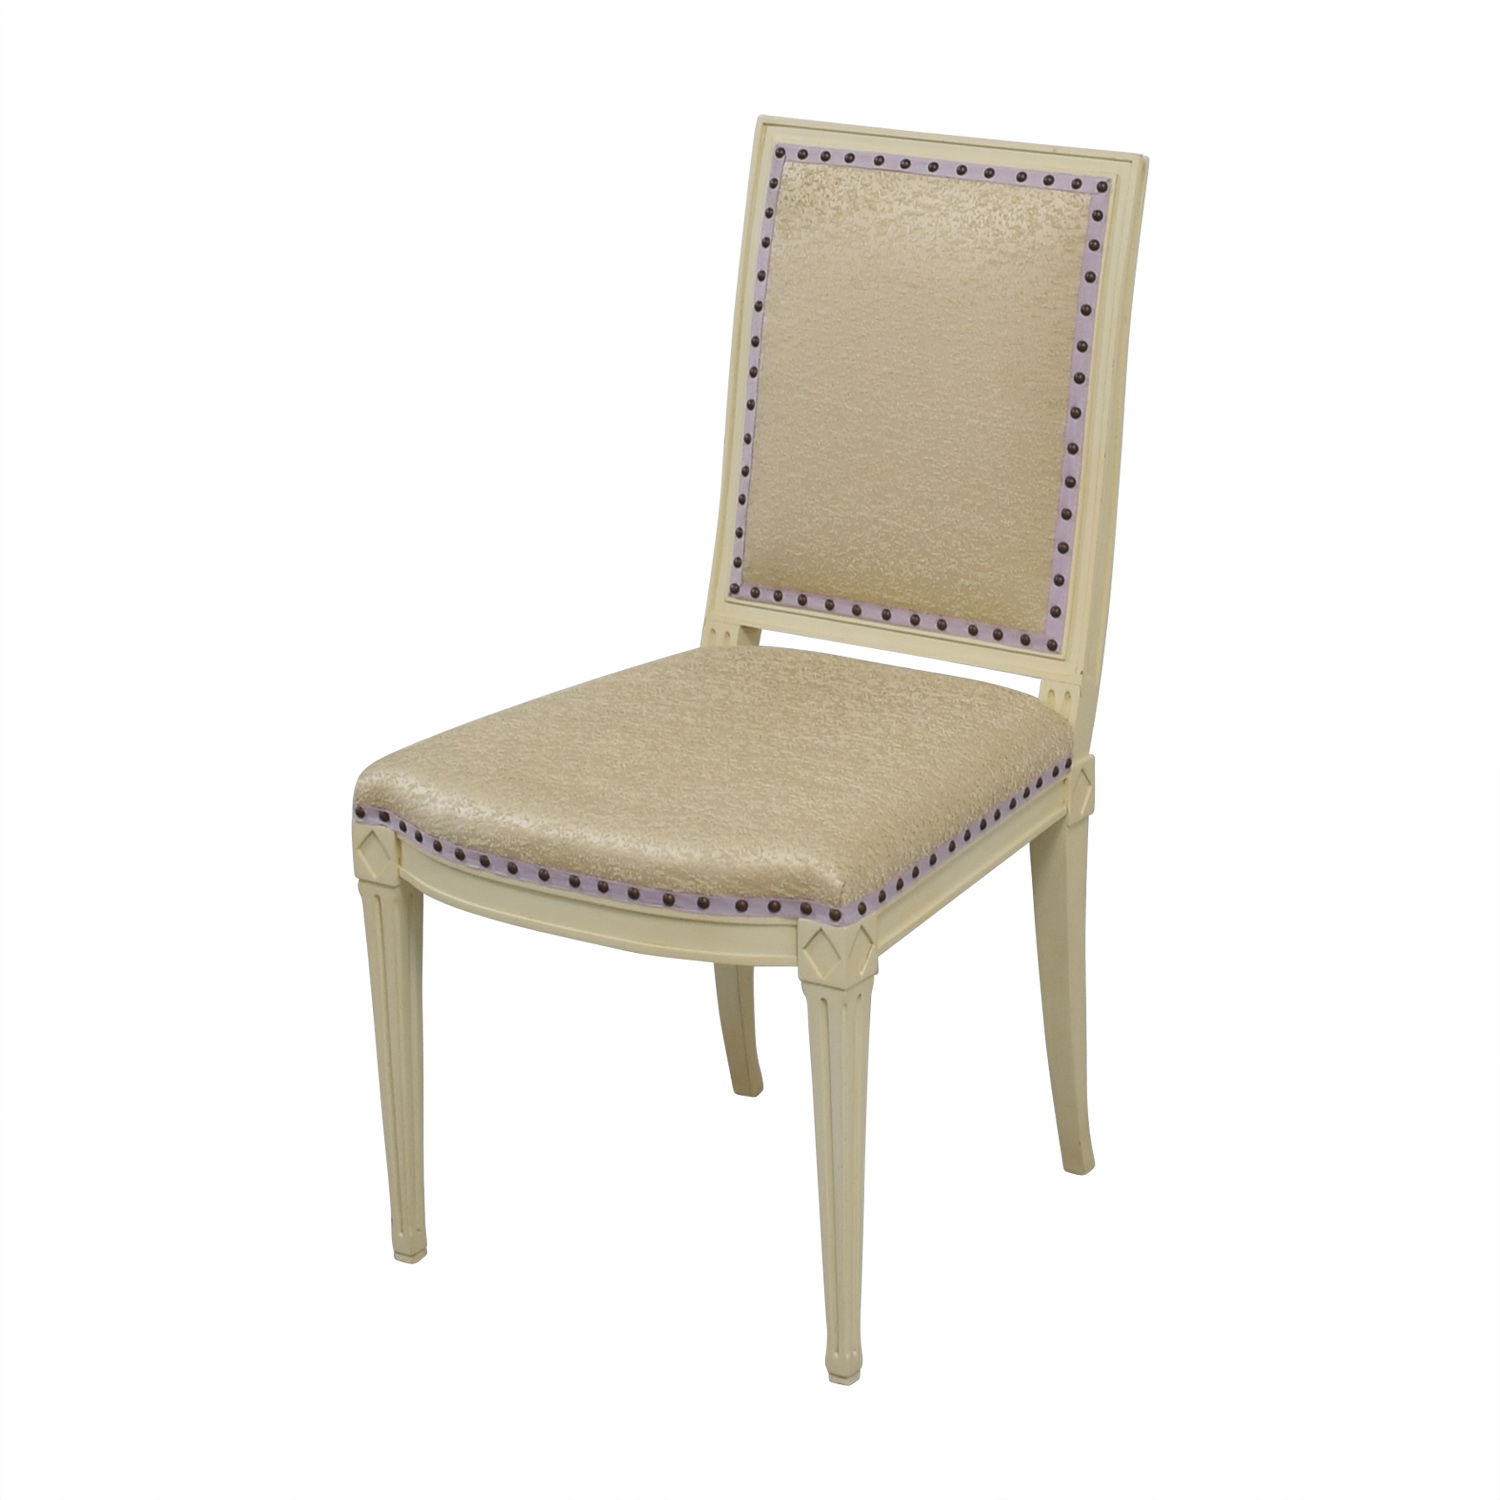 Custom Nailhead Upholstered Desk Chair second hand